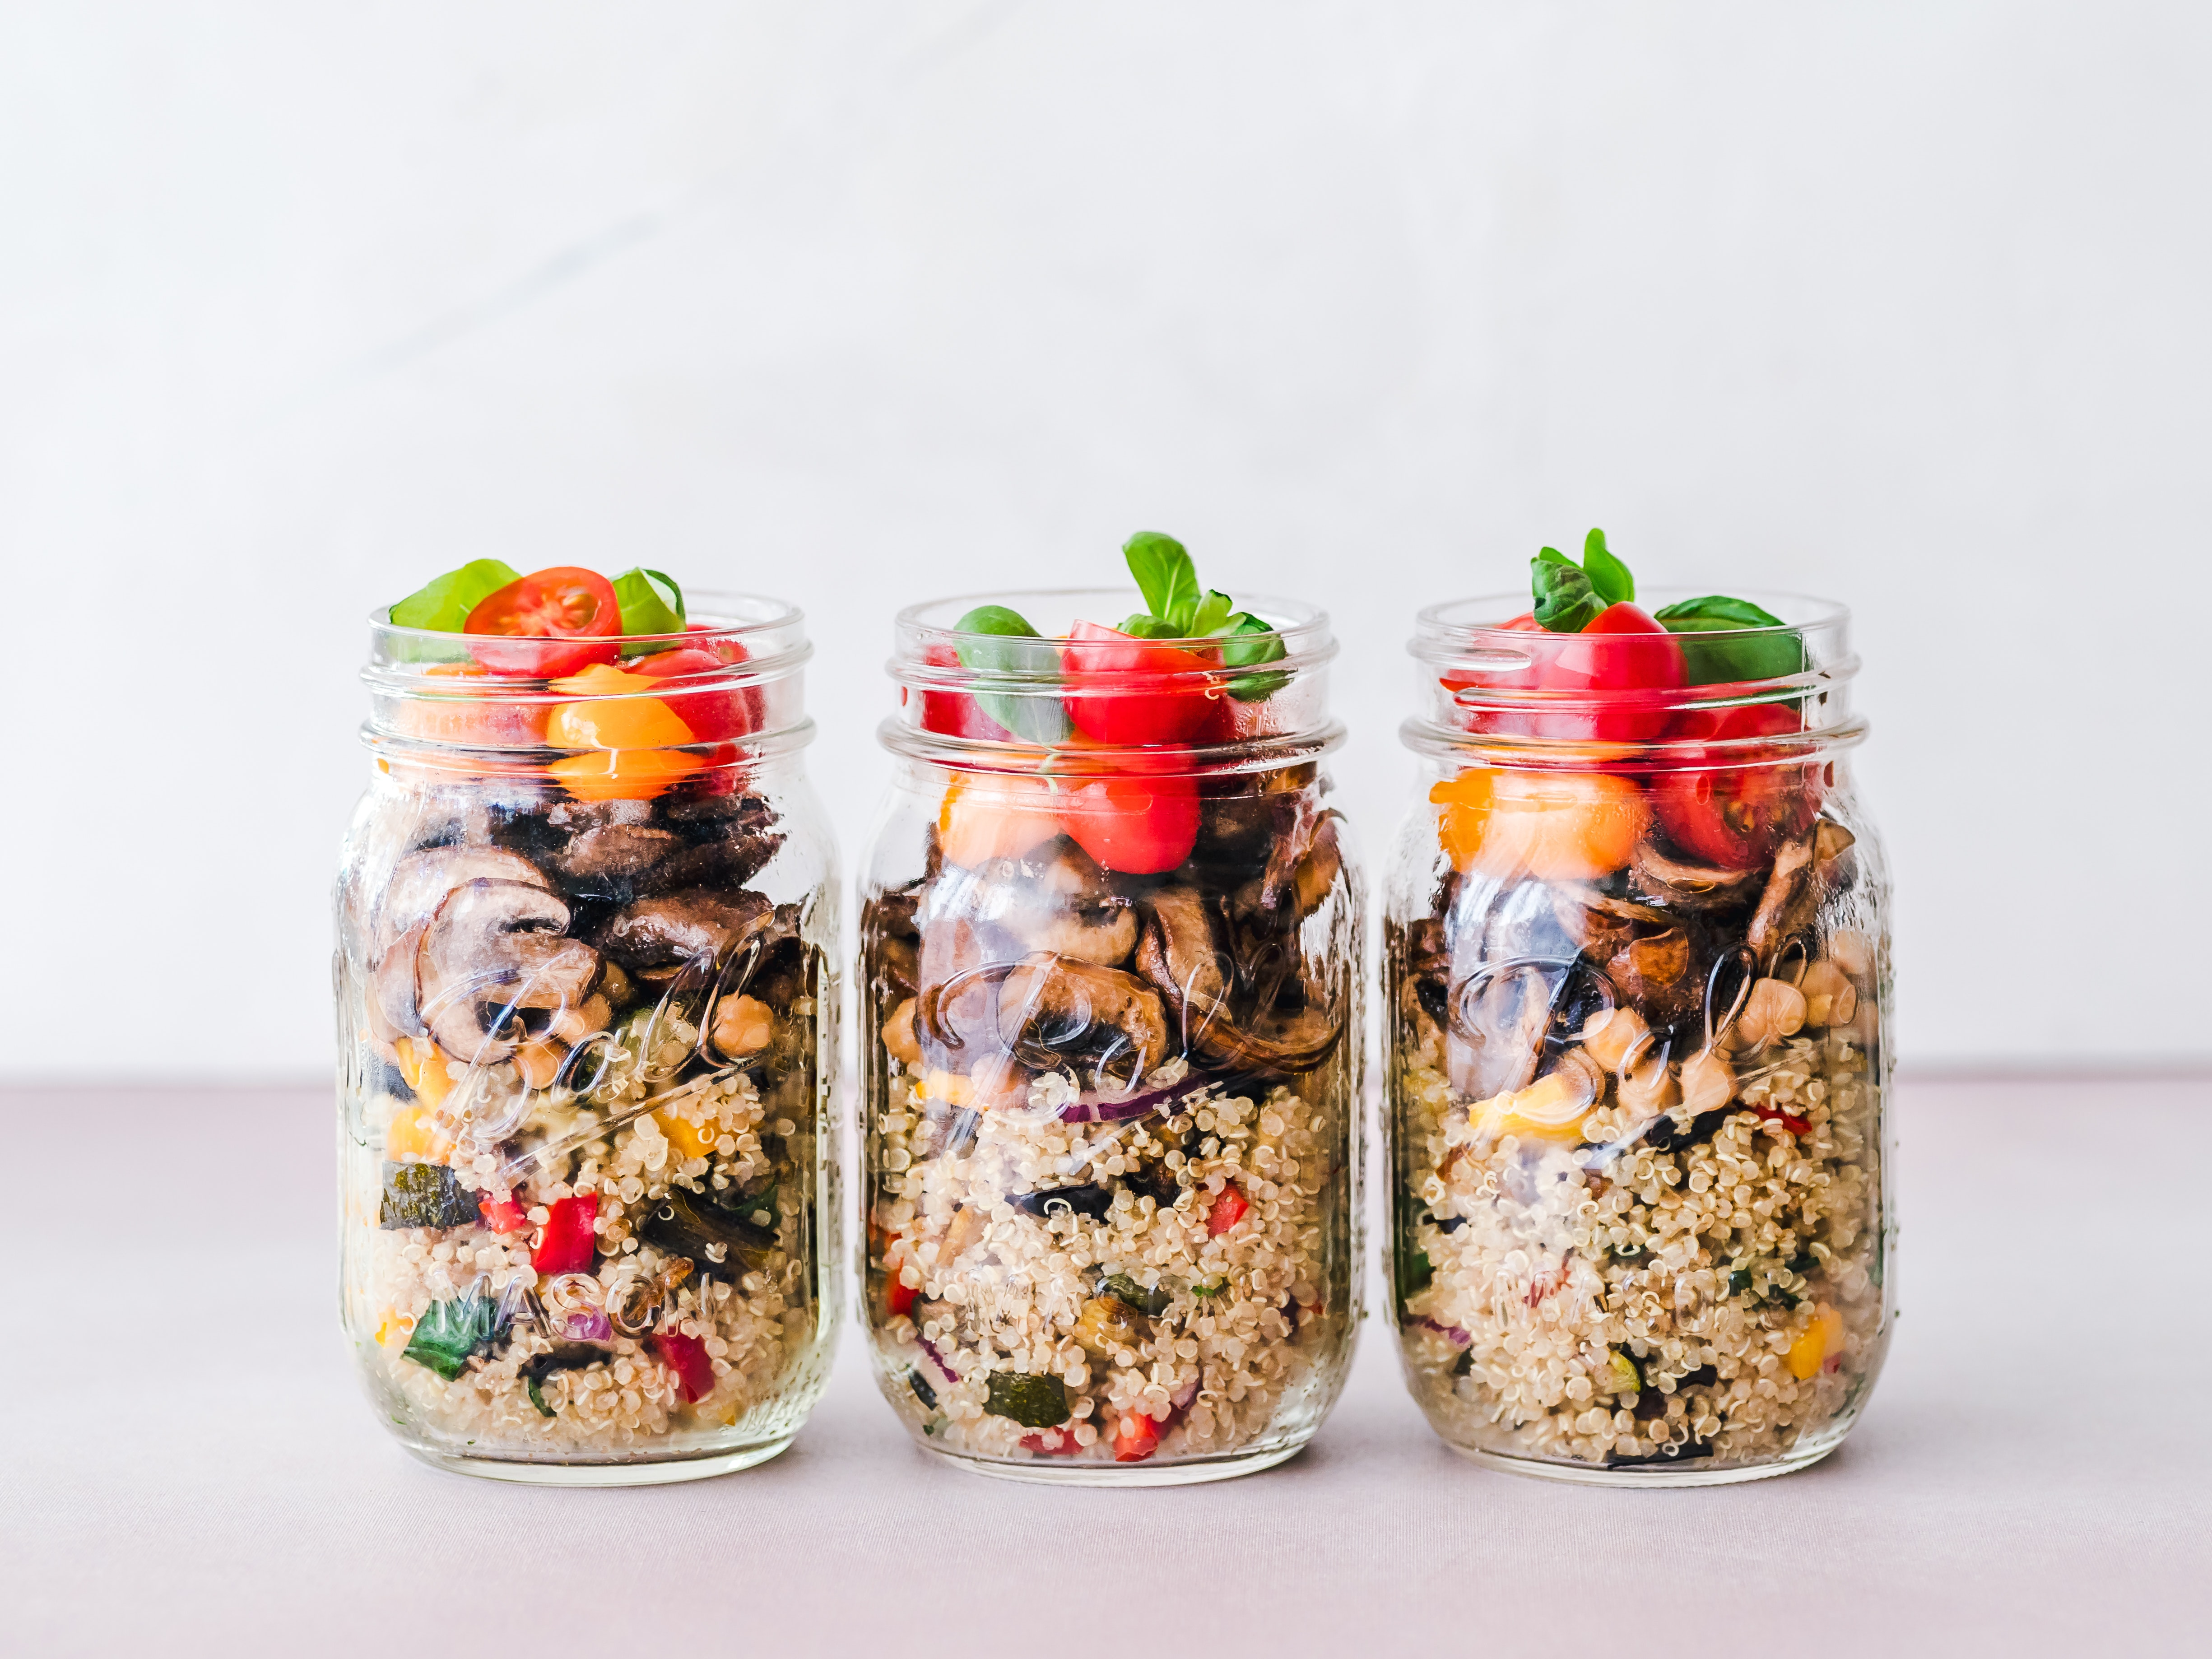 overnight oats in jars